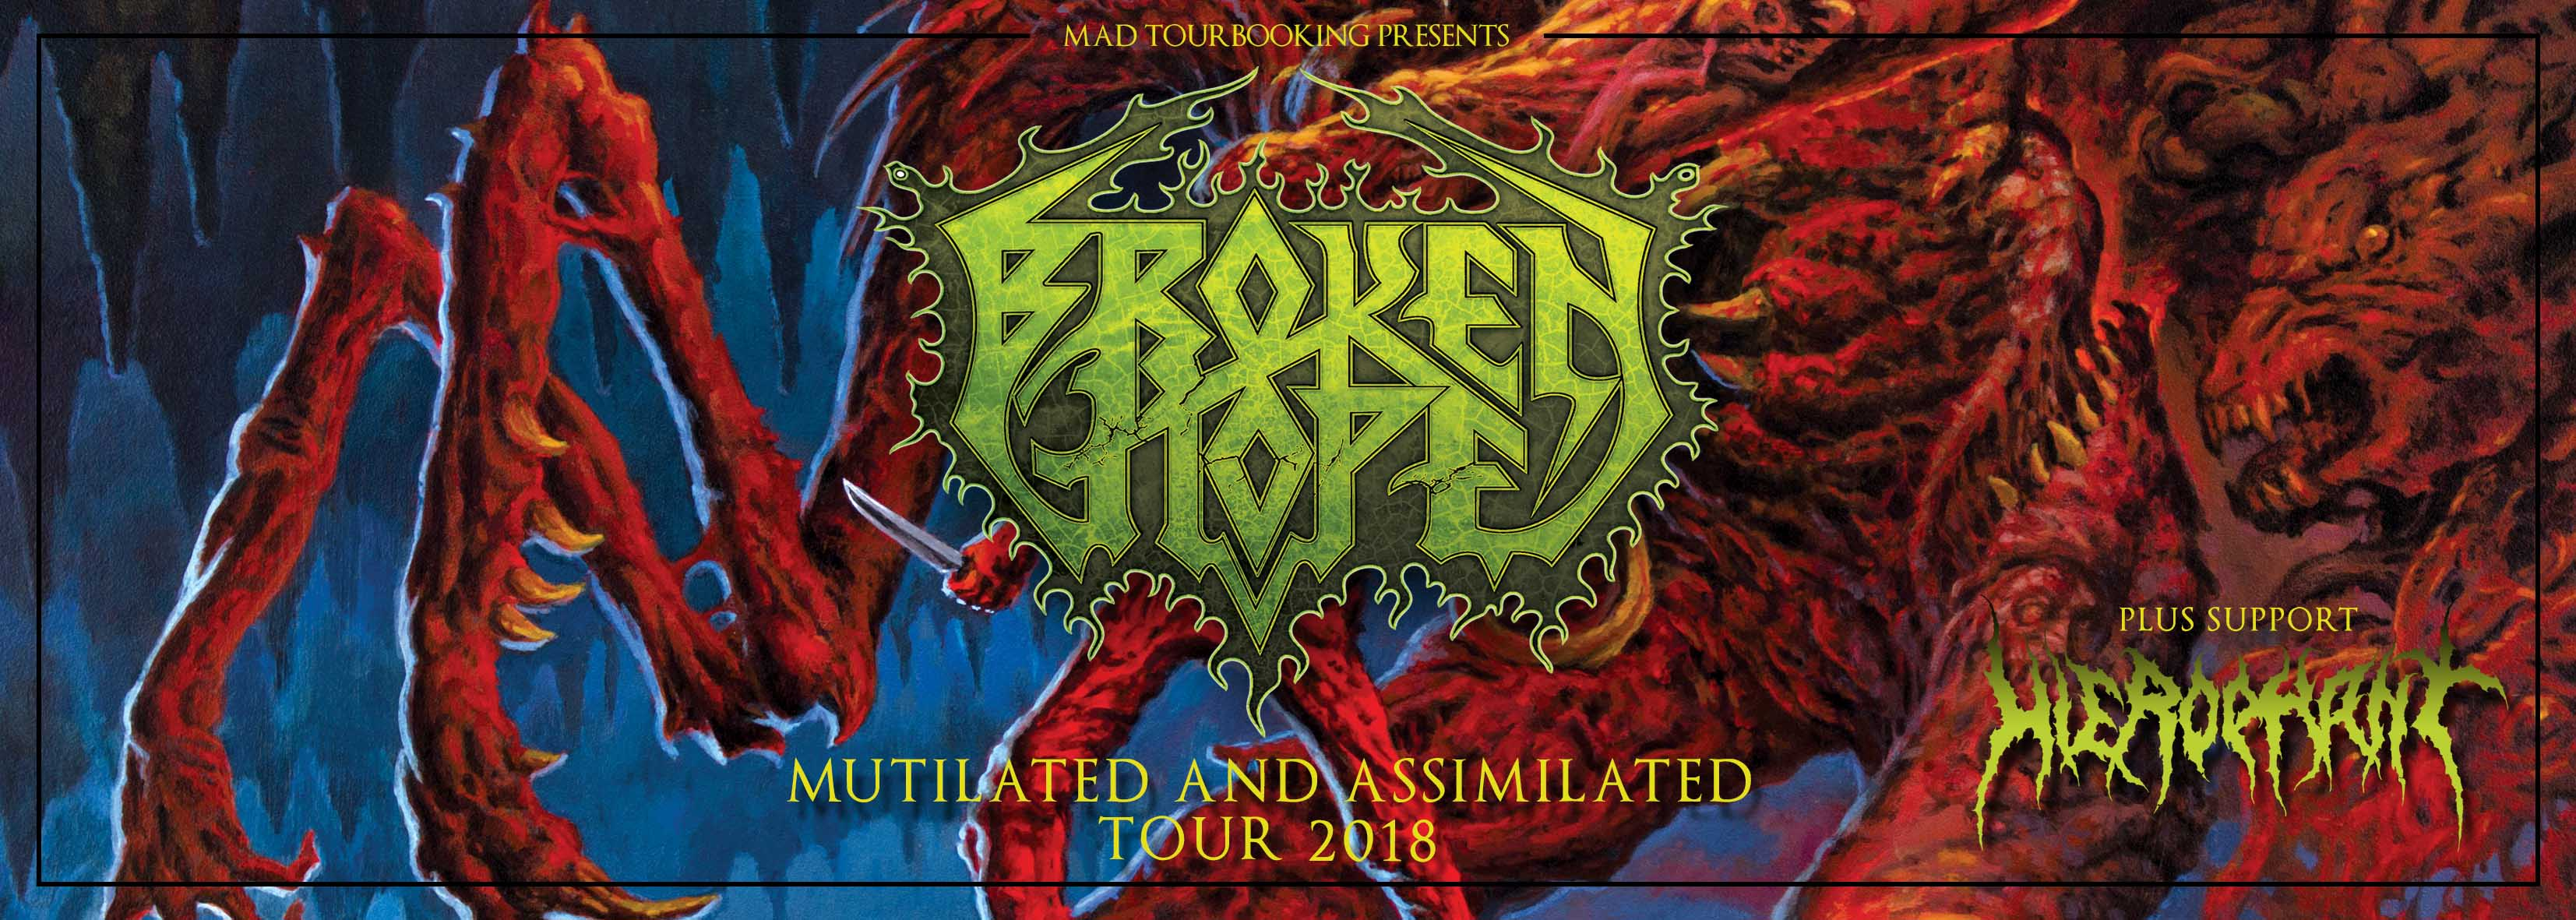 BROKEN HOPE - MUTILATED AND ASSIMILATED TOUR 2018